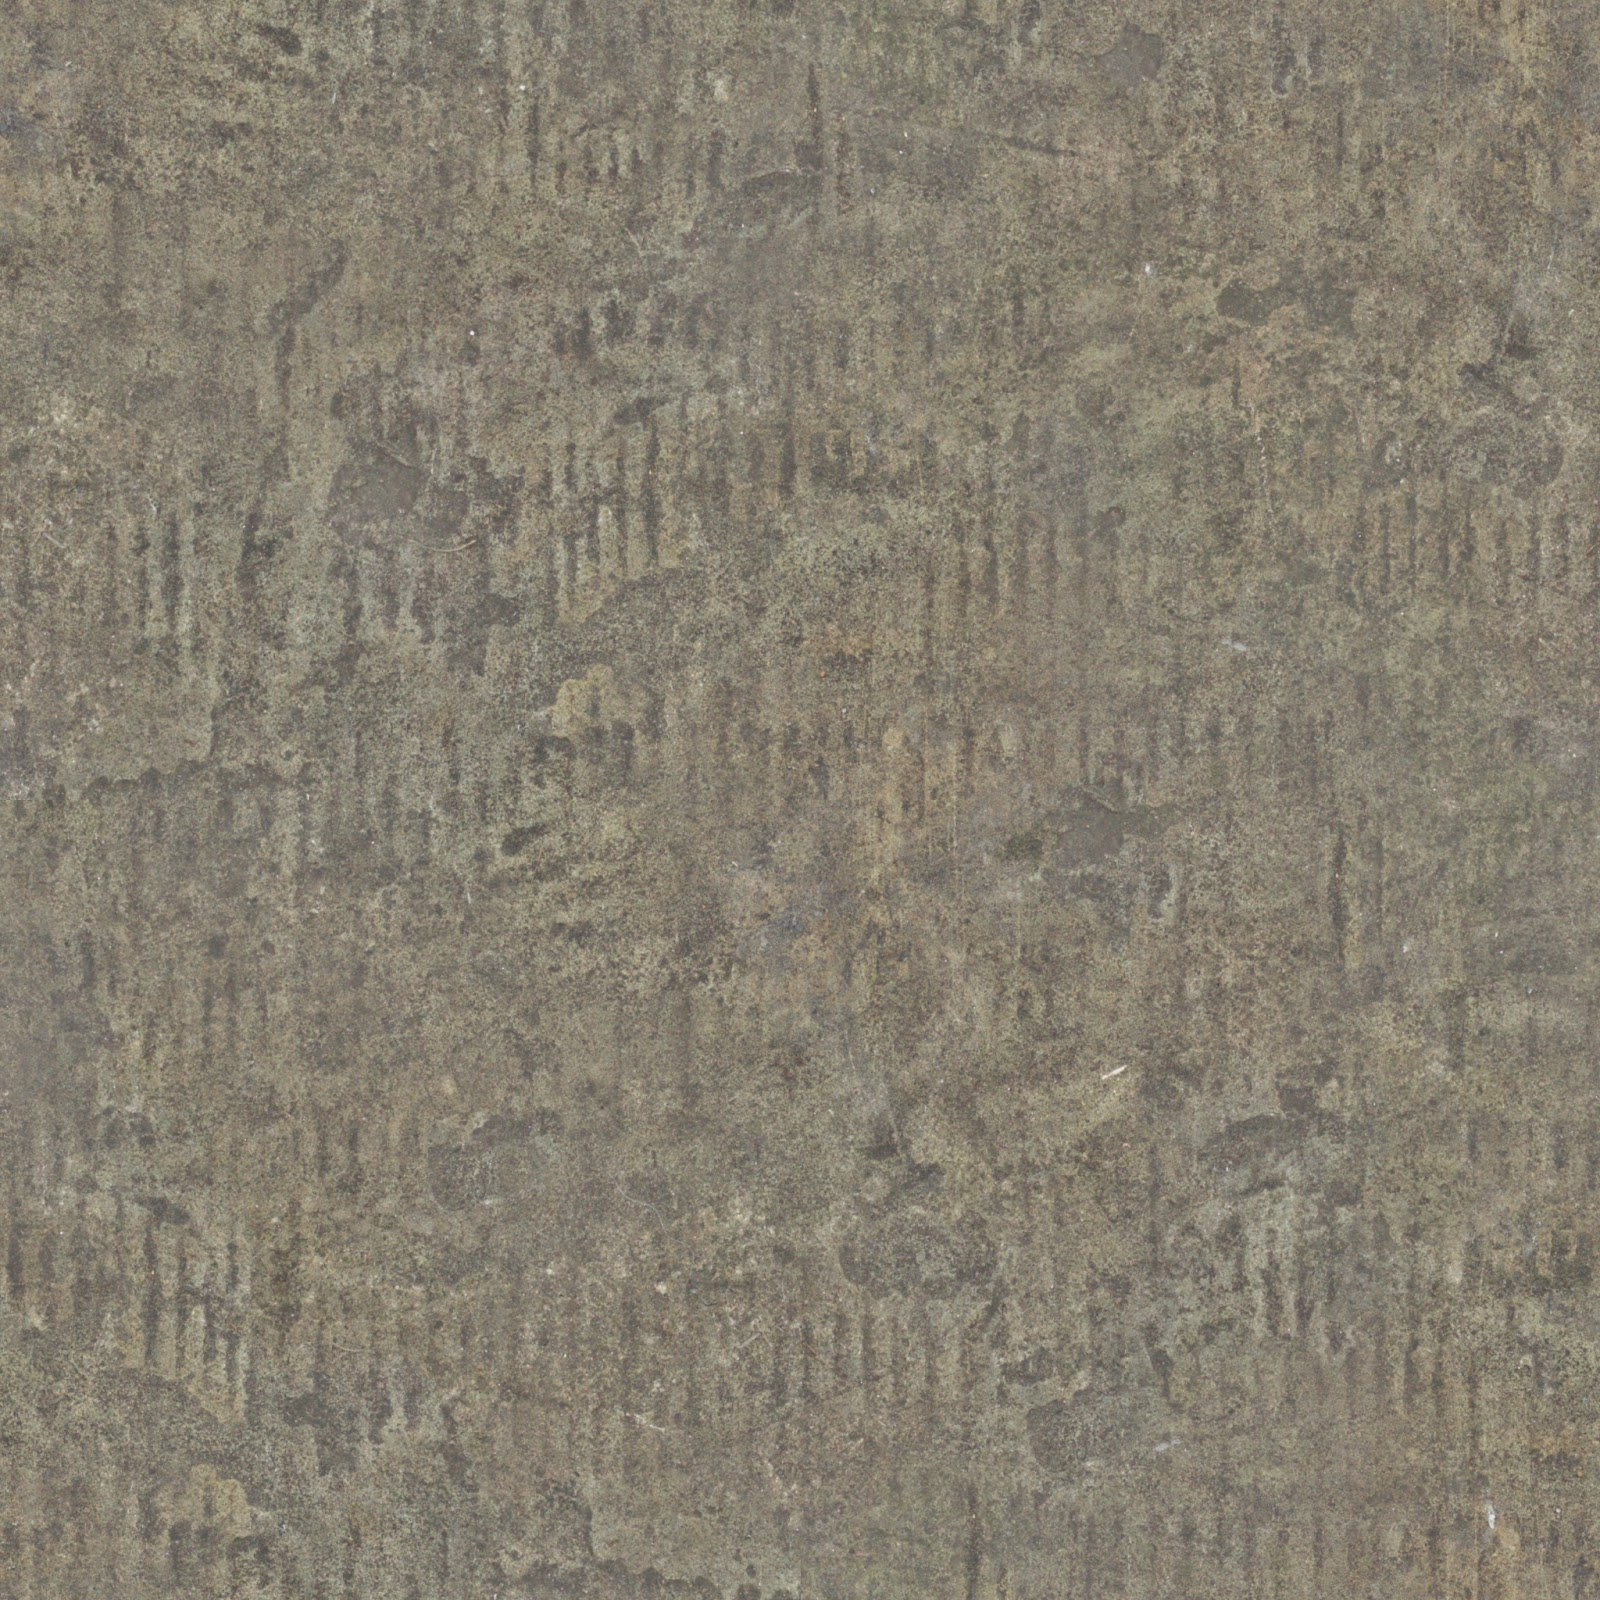 (Stone 11) rock cave mountain brown seamless texture 2048x2048